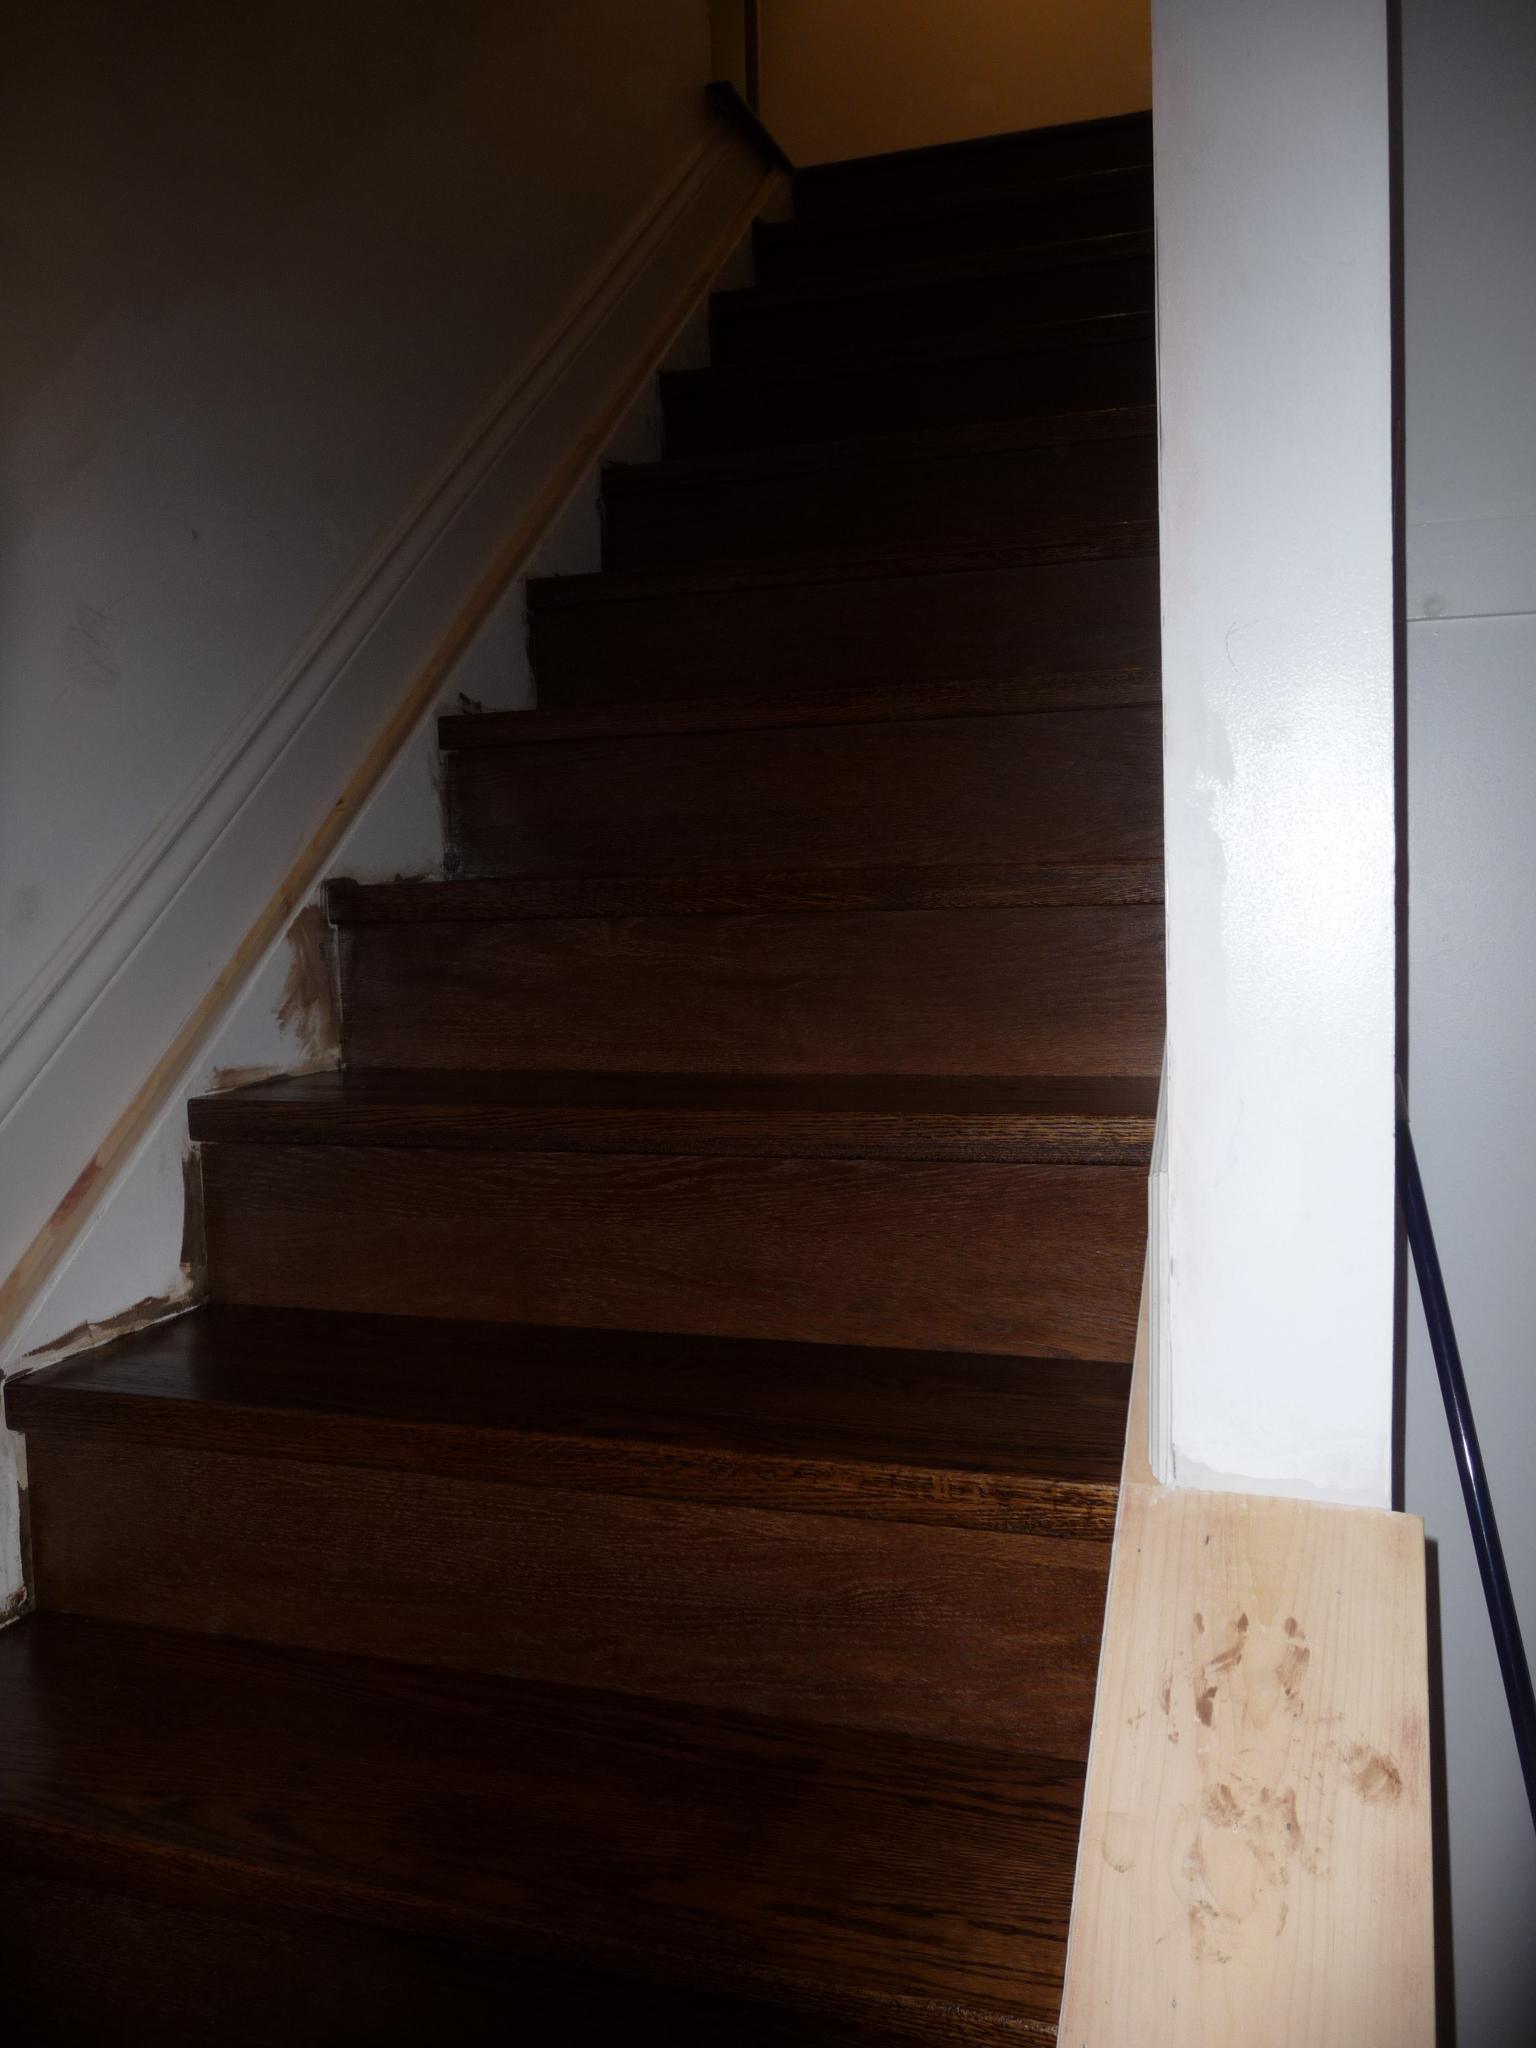 Step 3: Staining the Stairs